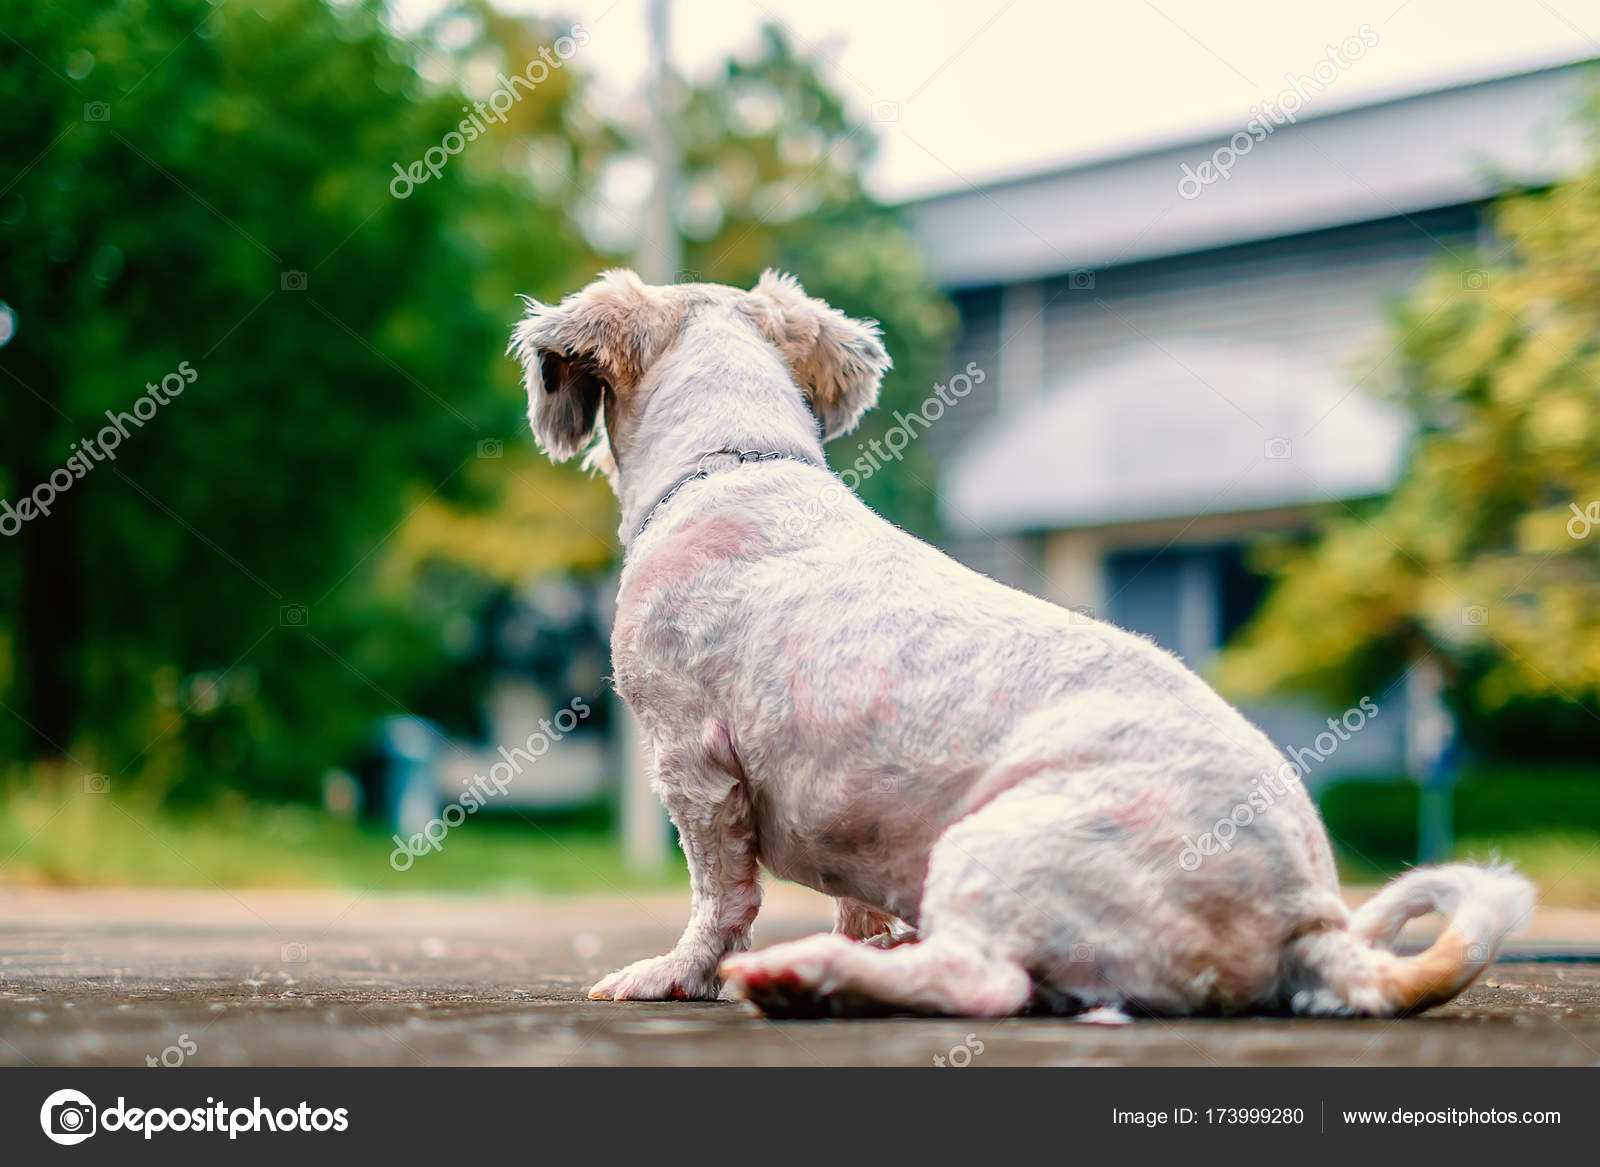 Short Hair White Shih Tzu Dog Sitting Down On The Road And Looking